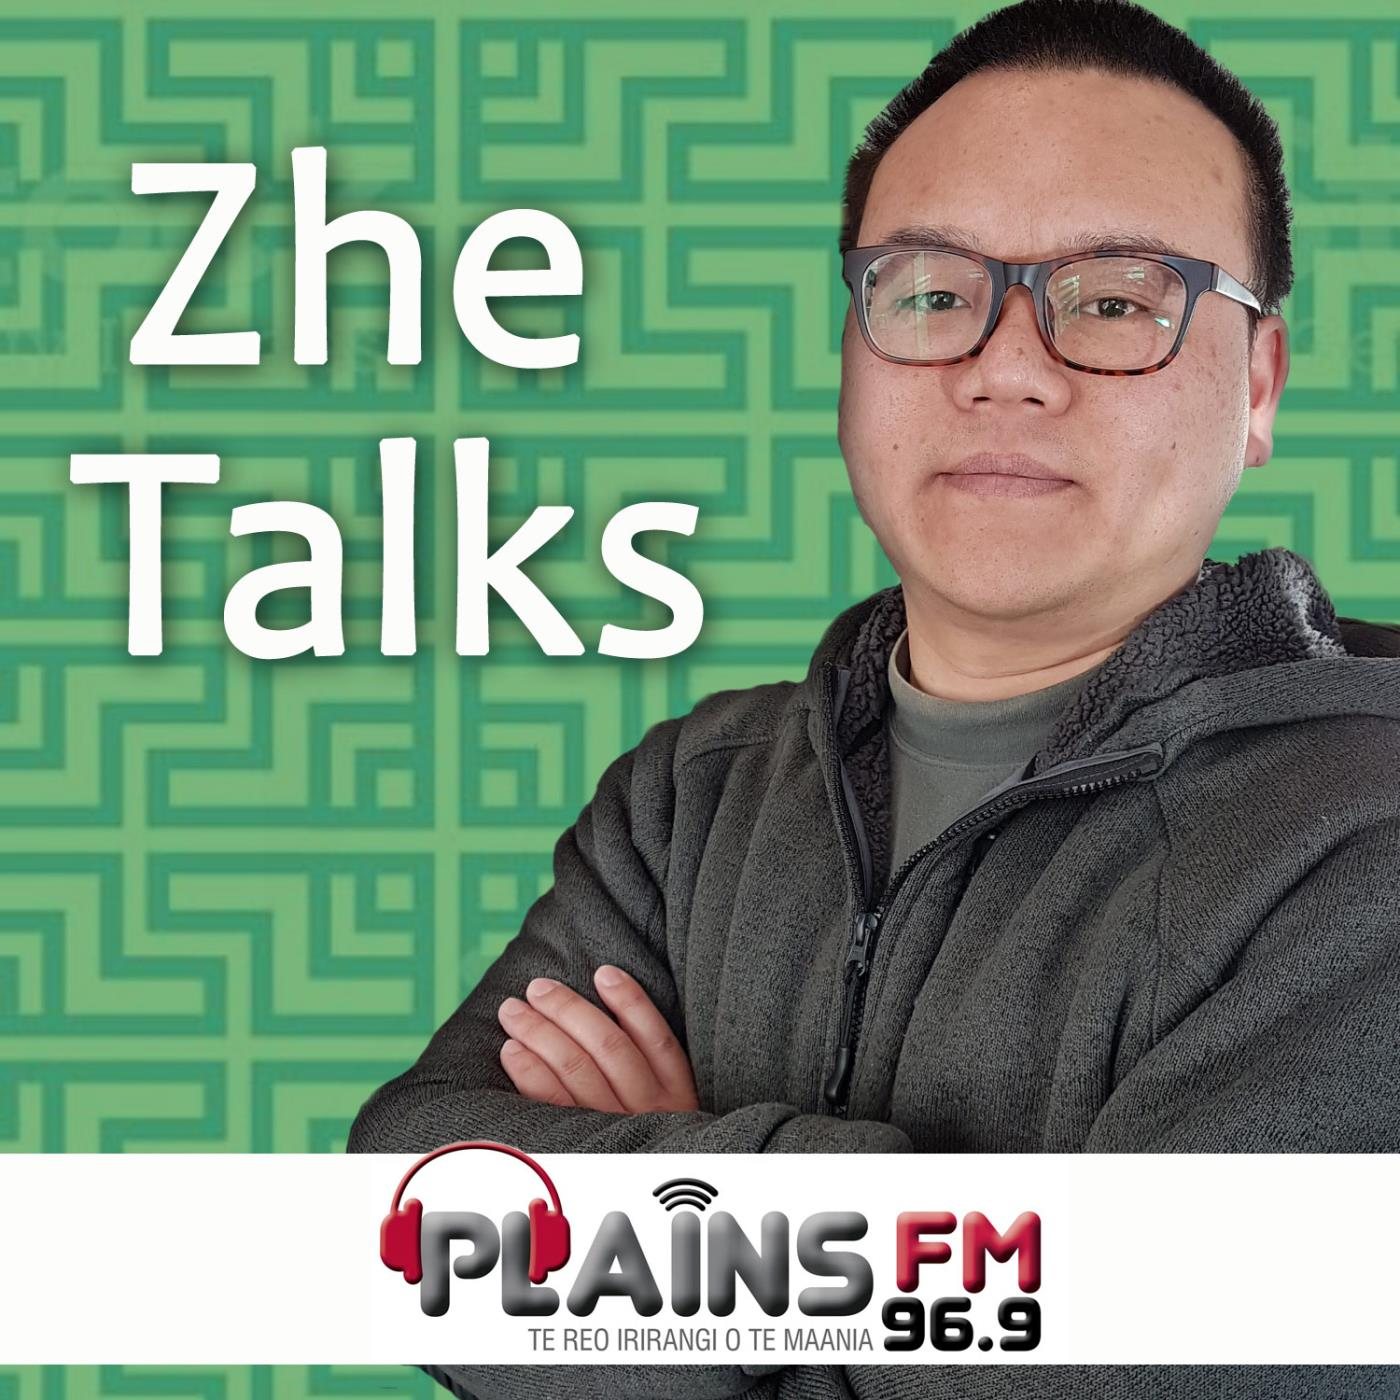 Zhe Talks